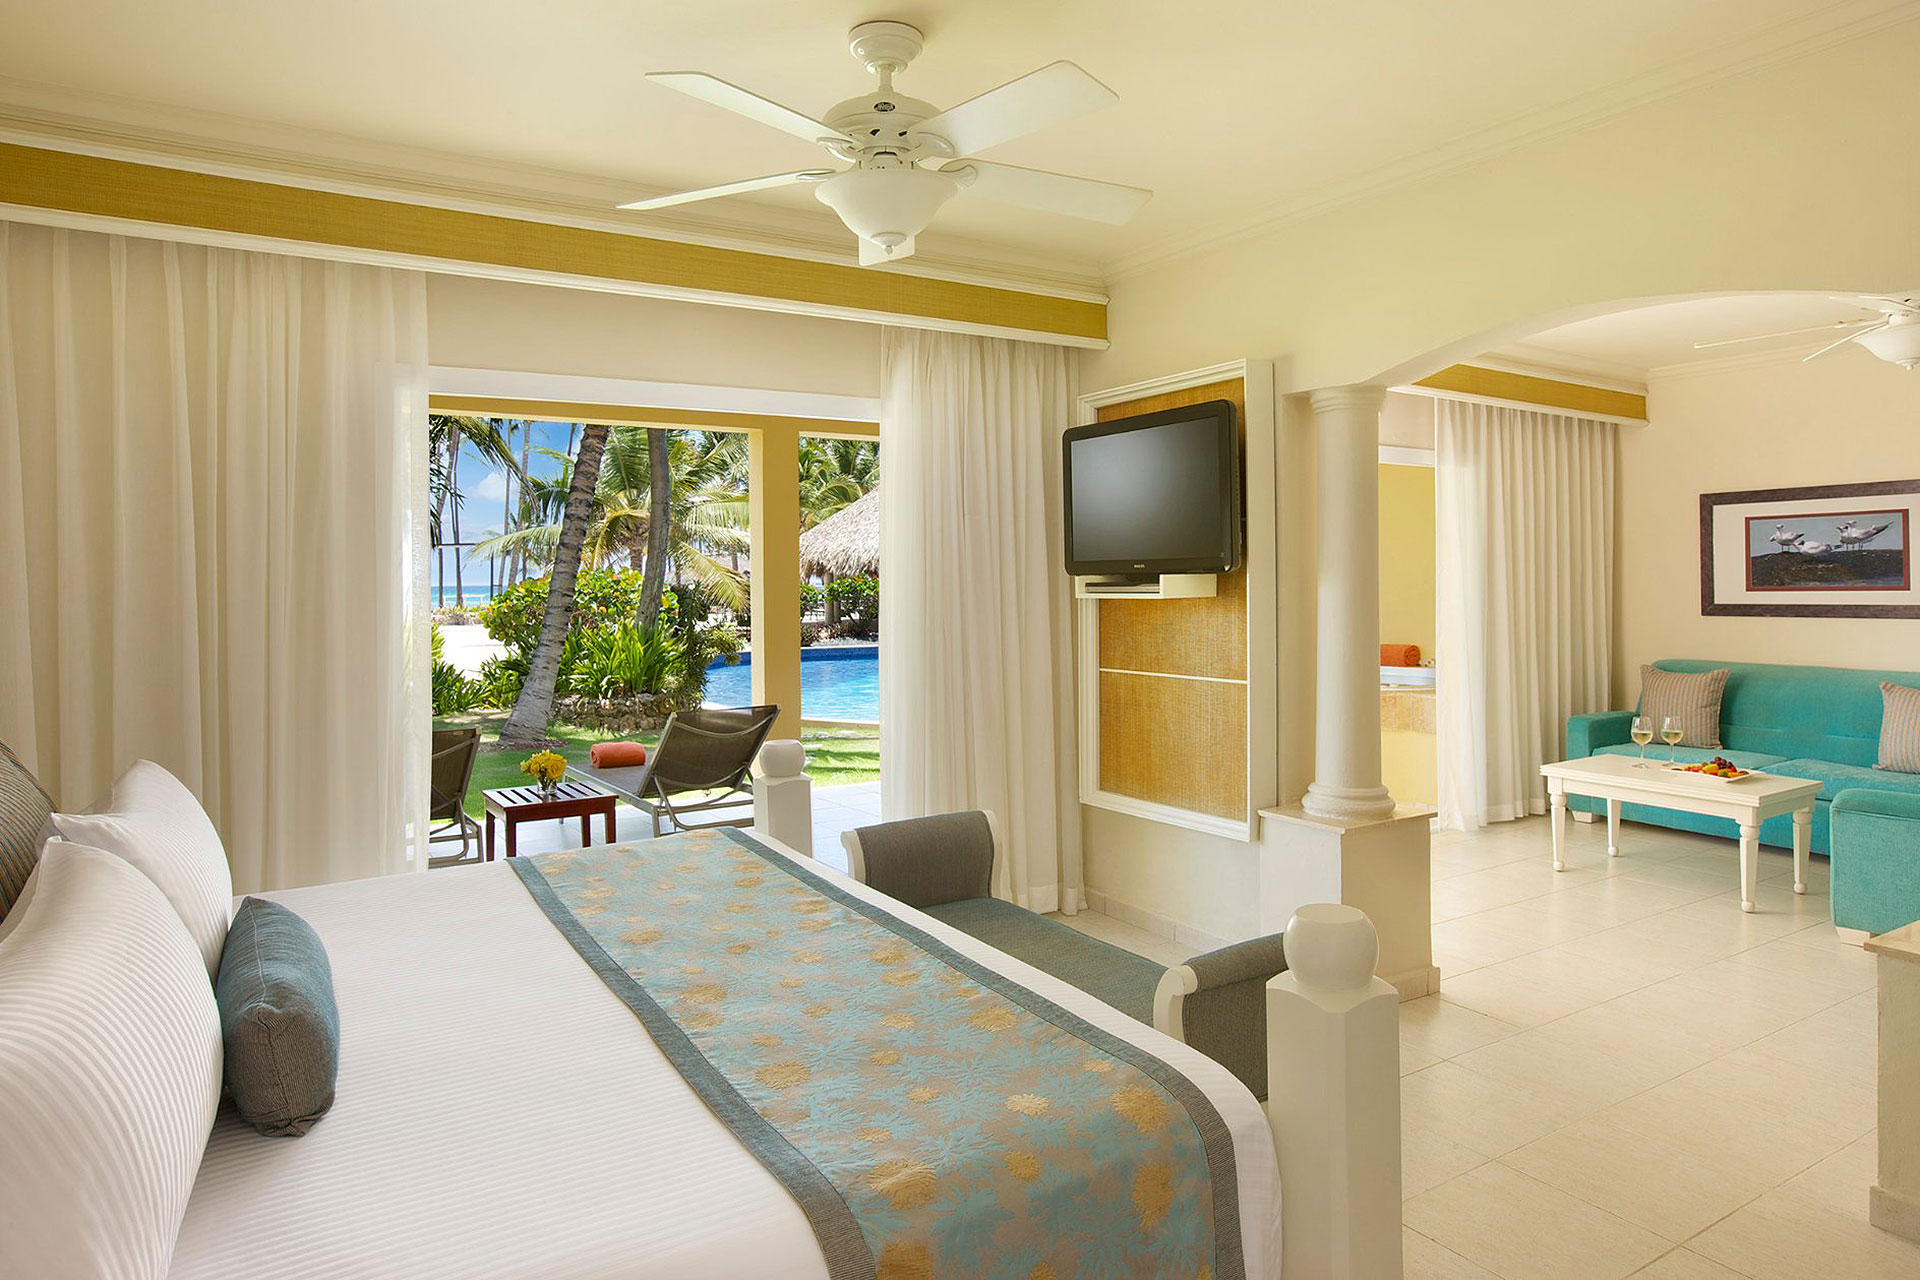 Suite at Dreams Punta Cana in Punta Cana, Dominican Republic